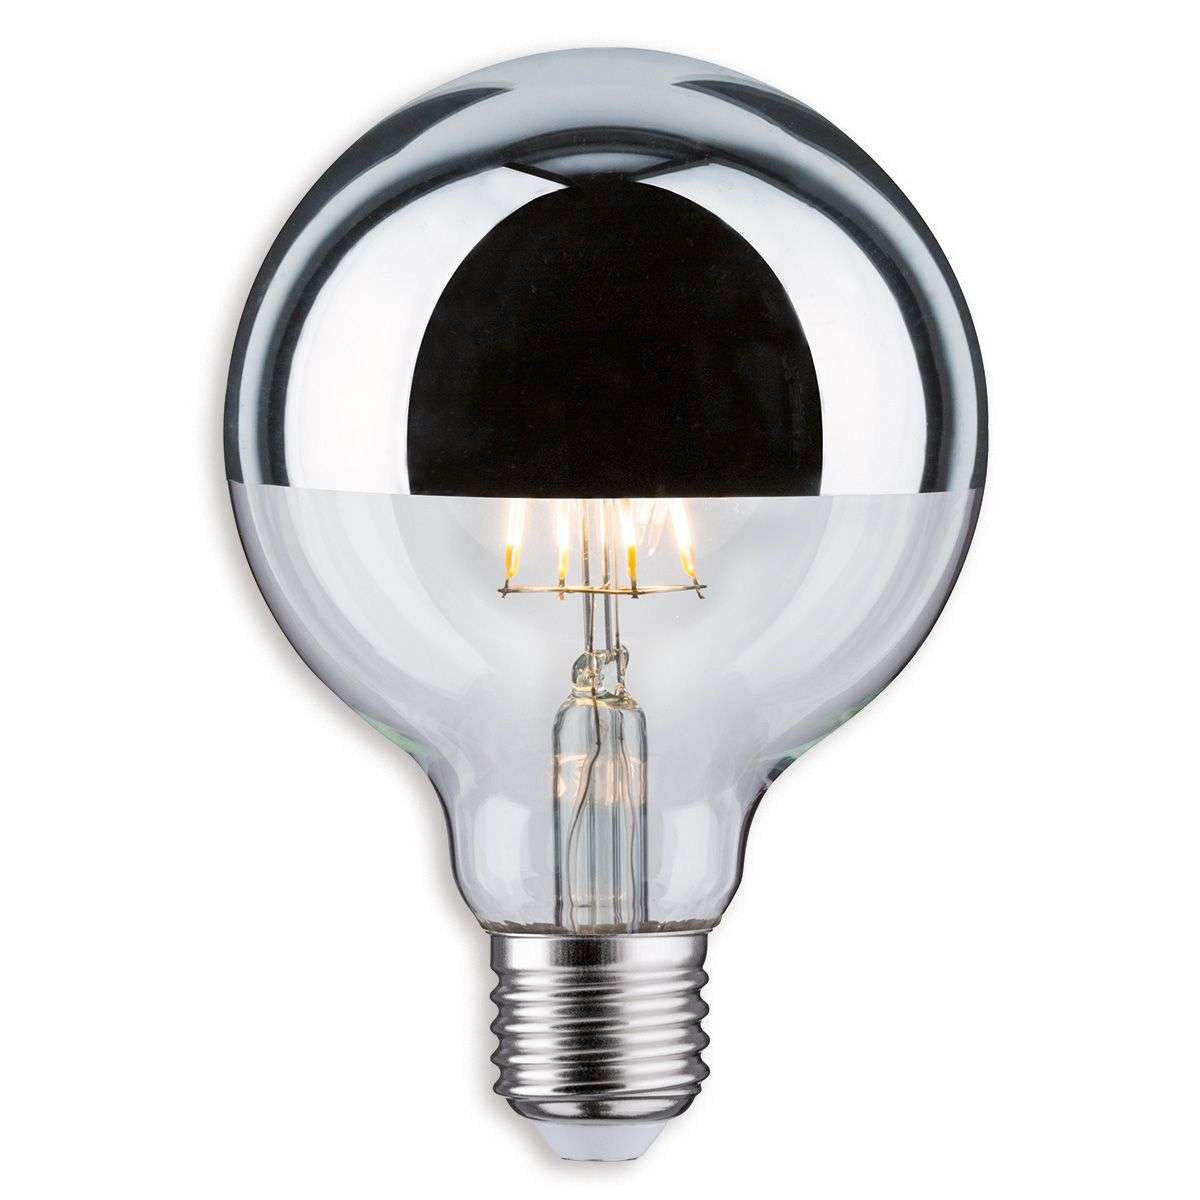 e27 5w 827 led half mirror globe bulb g95. Black Bedroom Furniture Sets. Home Design Ideas